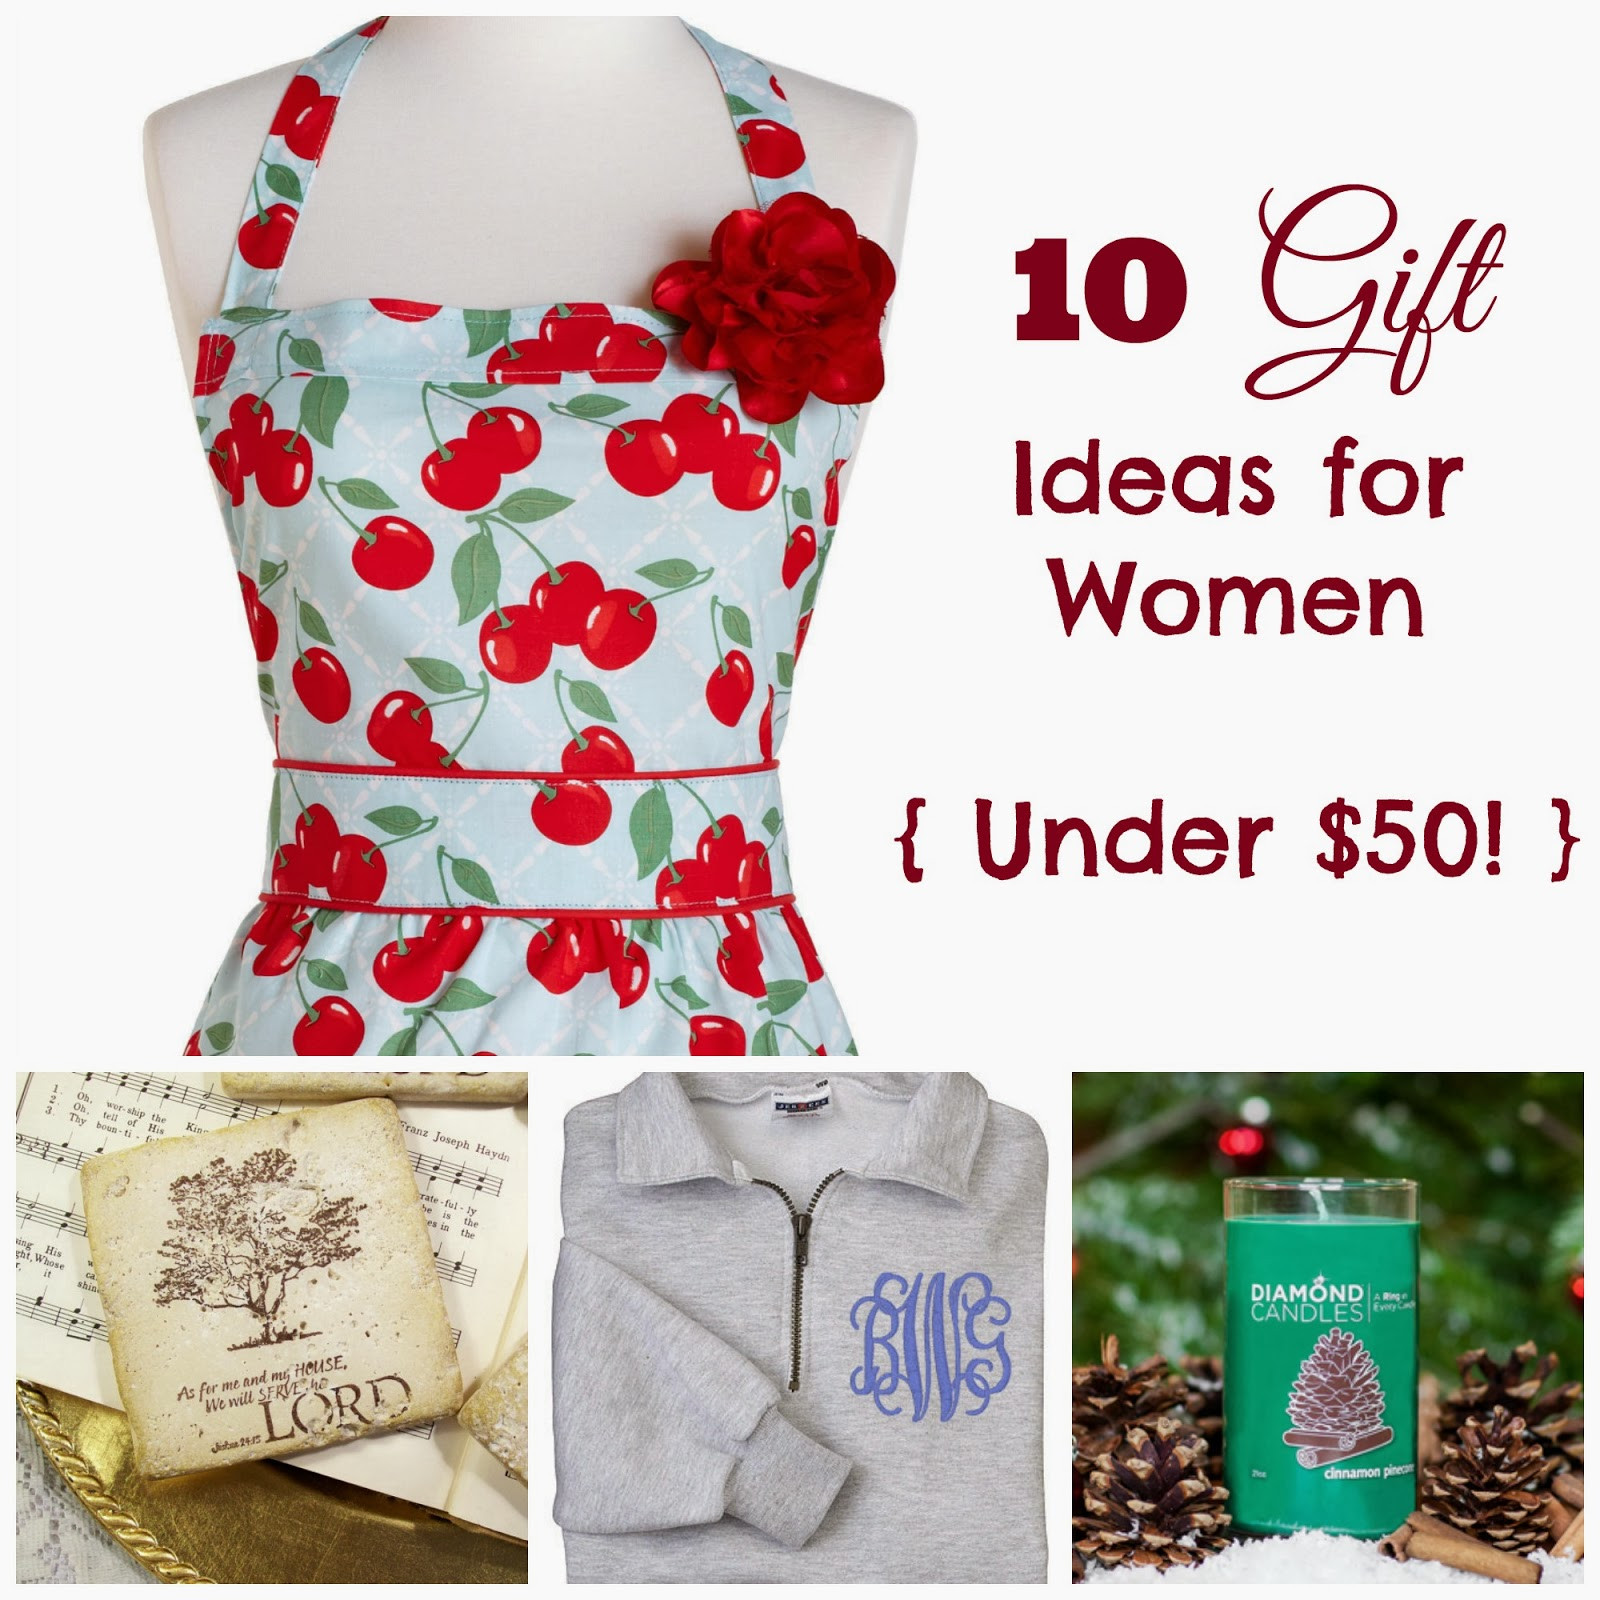 Best ideas about Gift Ideas Under 50 . Save or Pin Where Joy Is 10 Gift Ideas for Women Under $50 Now.